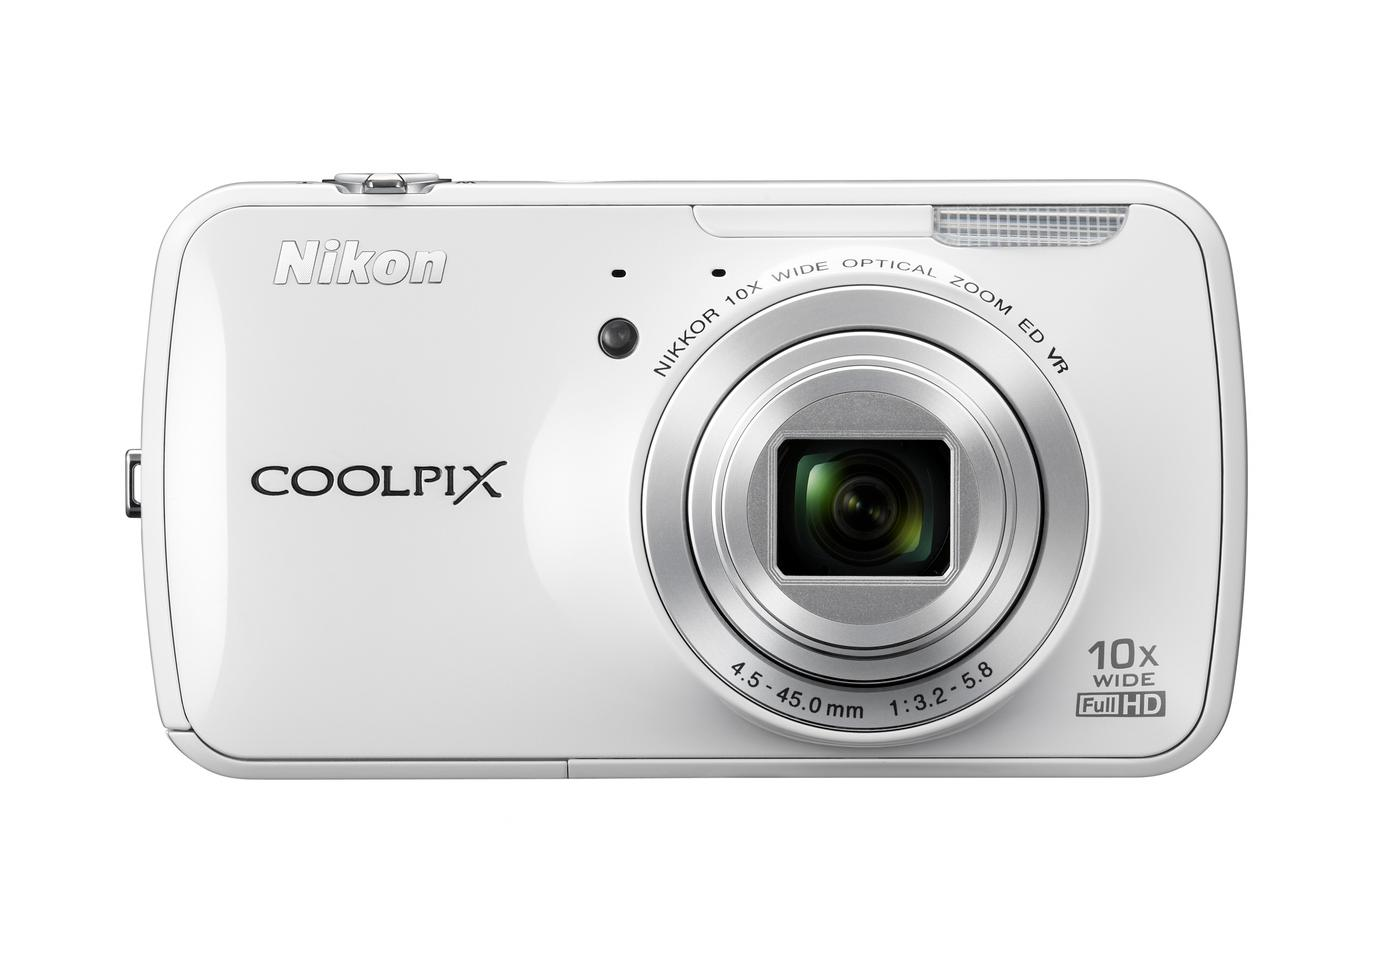 The Nikon COOLPIX S800c can be used like any Android device to surf the web, run apps and access Google Play ... but not make phone calls